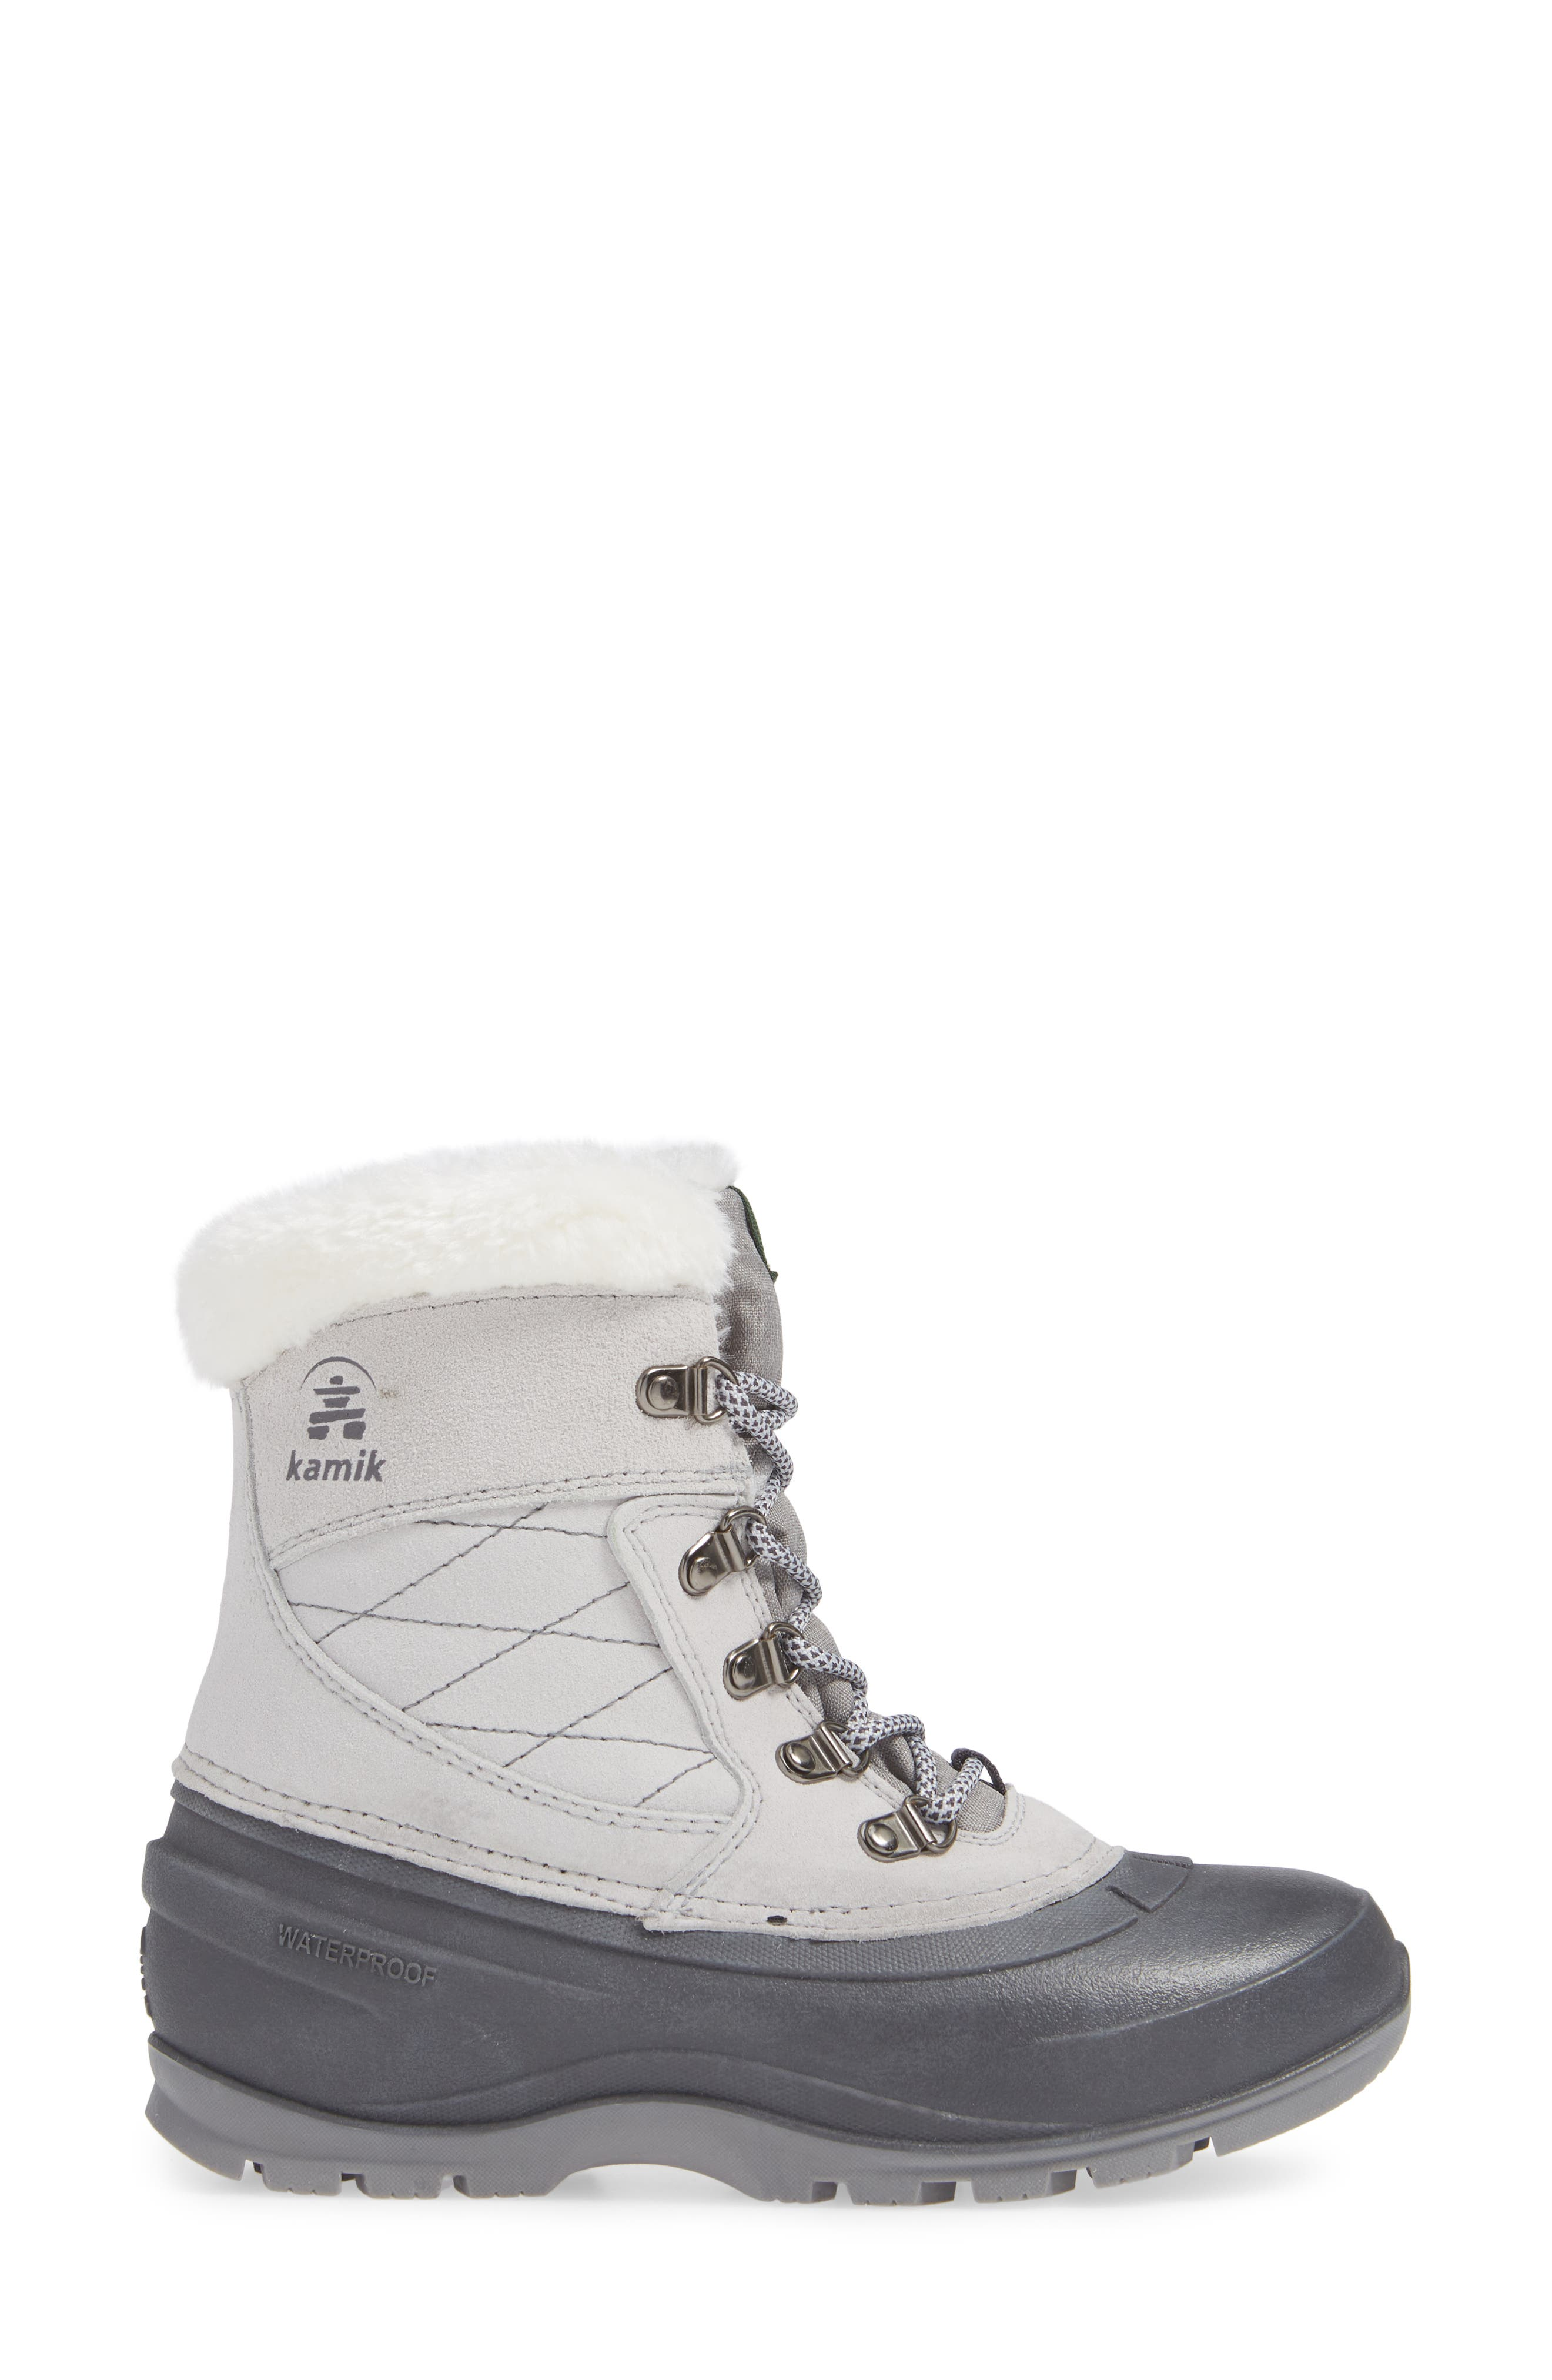 KAMIK,                             Snovalley1 Waterproof Thinsulate<sup>®</sup> Insulated Snow Boot,                             Alternate thumbnail 3, color,                             LIGHT GREY SUEDE